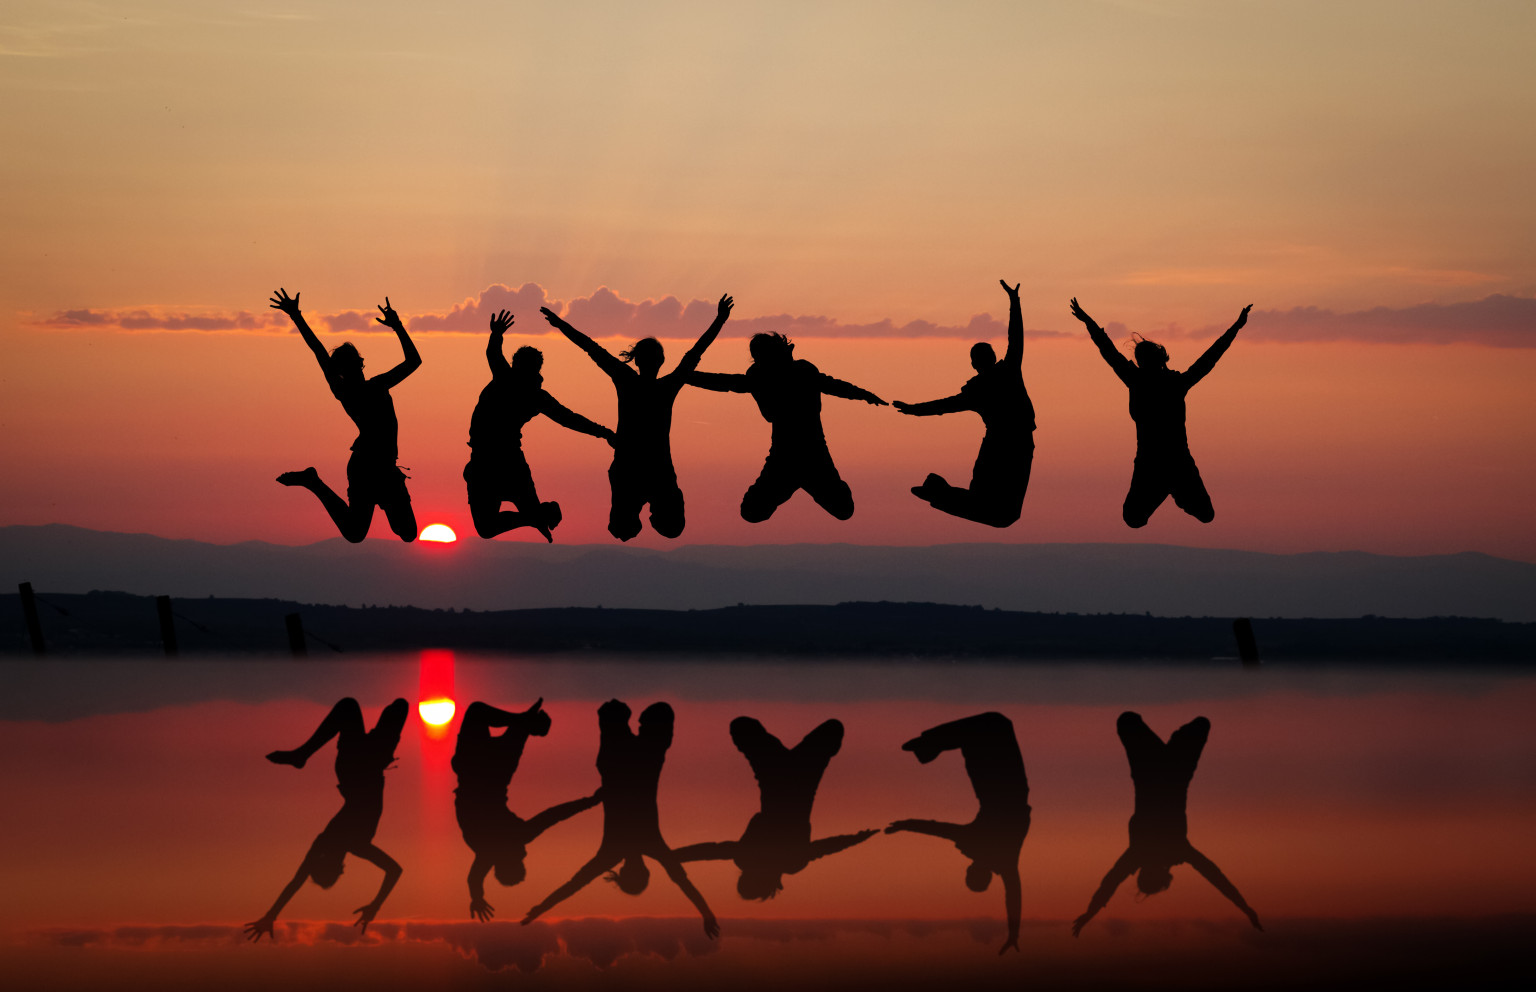 Friendship Background Pictures For Photoshop  clipartsgram